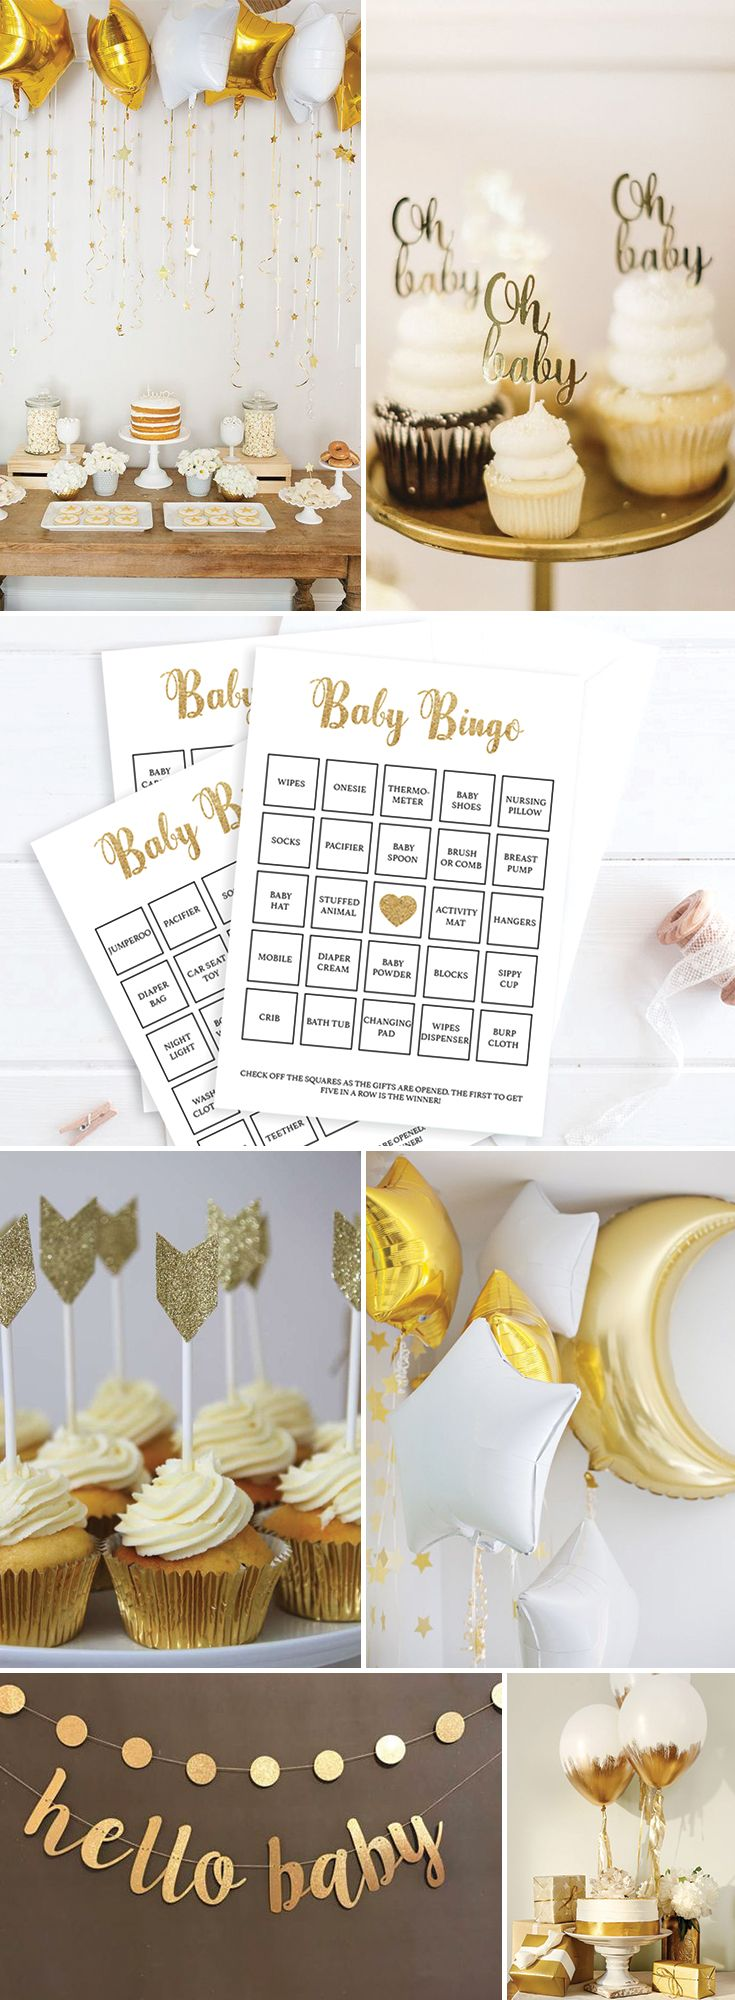 Gold Baby Shower Ideas by LittleSizzle. Twinkle Twinkle Little Star Gender Neutral. Printable Baby Bingo Game for large groups. The set has everything you need to play Baby Bingo in multiple ways. A blank card to be filled out by your guests, 30 pre-filled cards to make things easy and an editable PDF template for you to fill out with your own gift ideas or if you have more than 30 guests!